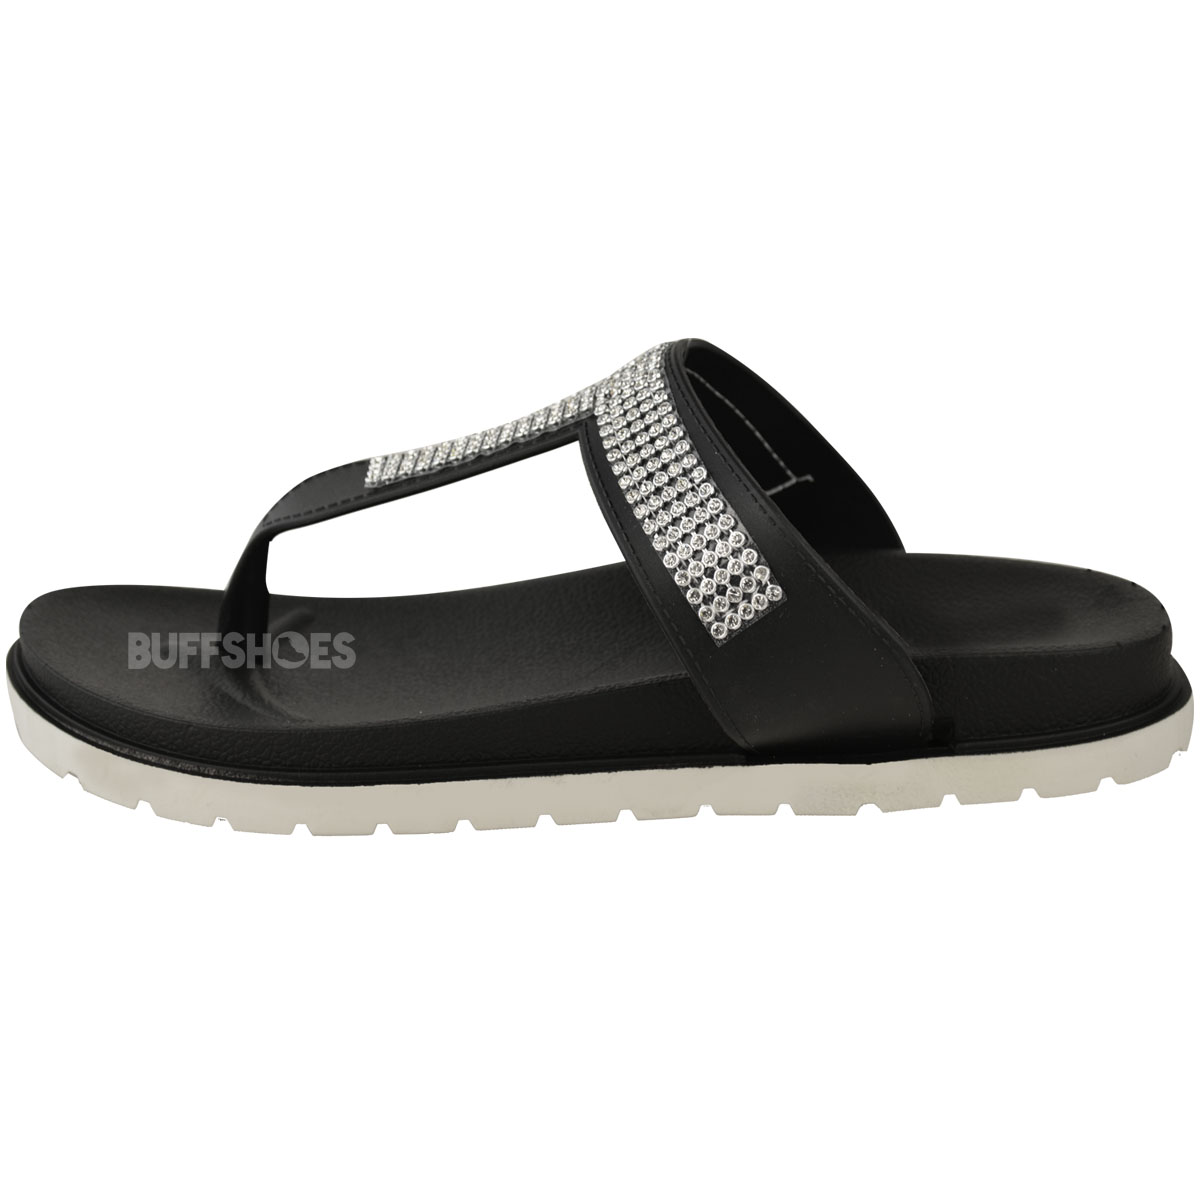 Womens-Ladies-Summer-Jelly-Sandals-Diamante-Wedge-Cushioned-Comfort-Shoes-Size thumbnail 5